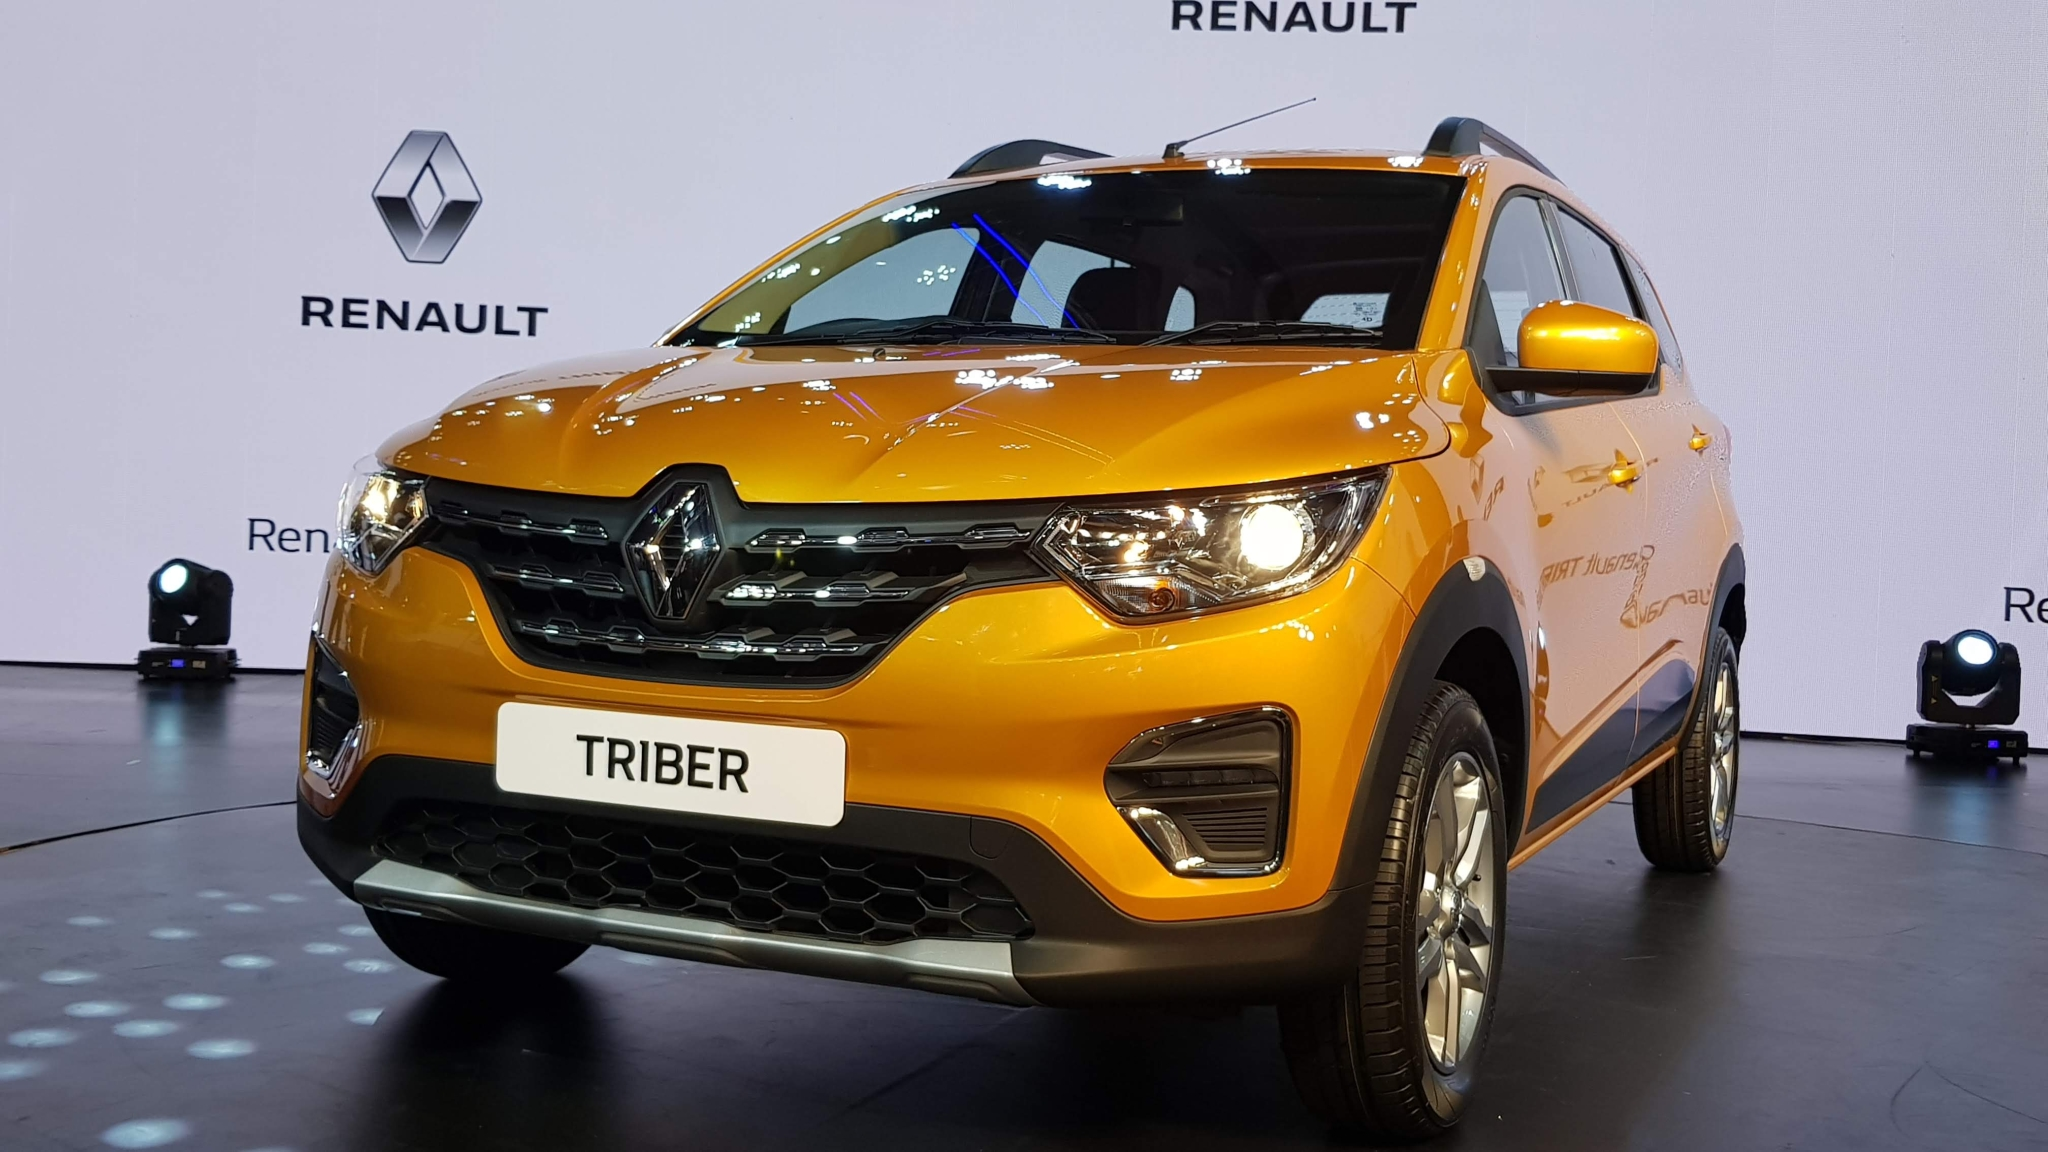 Renault Triber MPV Launched: Should The Maruti Ertiga Worry?